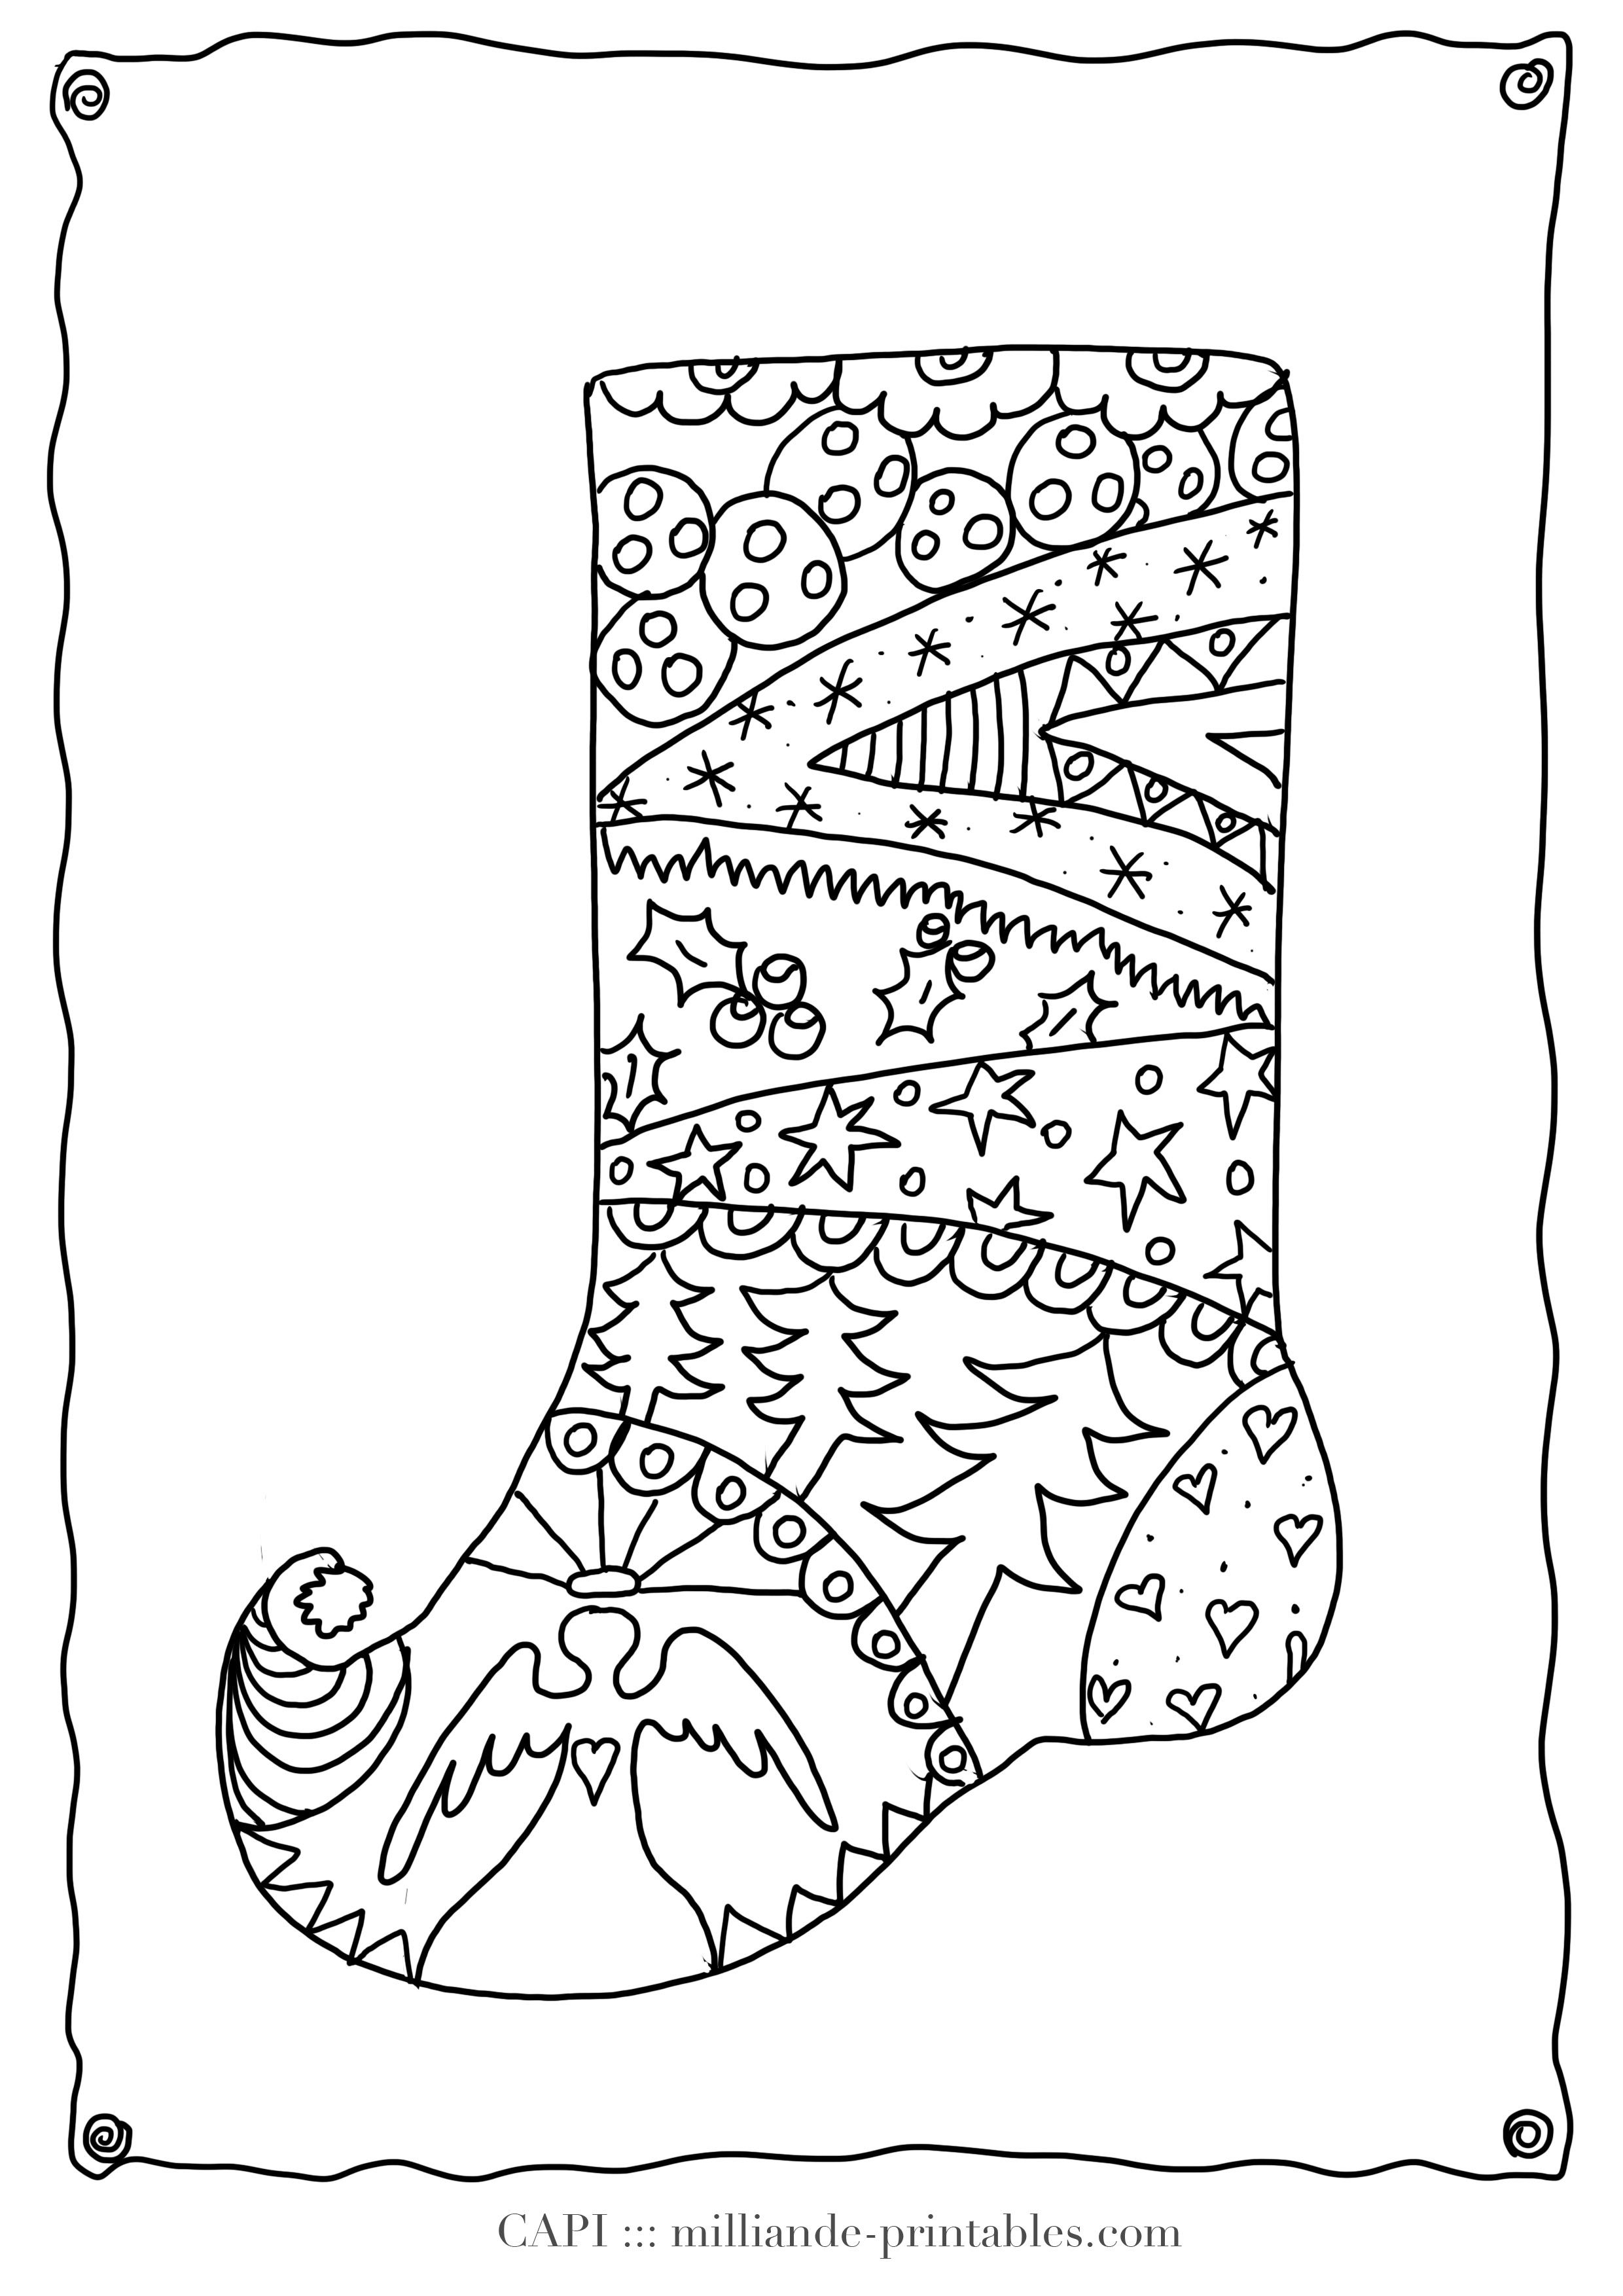 Christmas Stocking To Color Free Printable Christmas Coloring Pages For Kids Detailed Adult